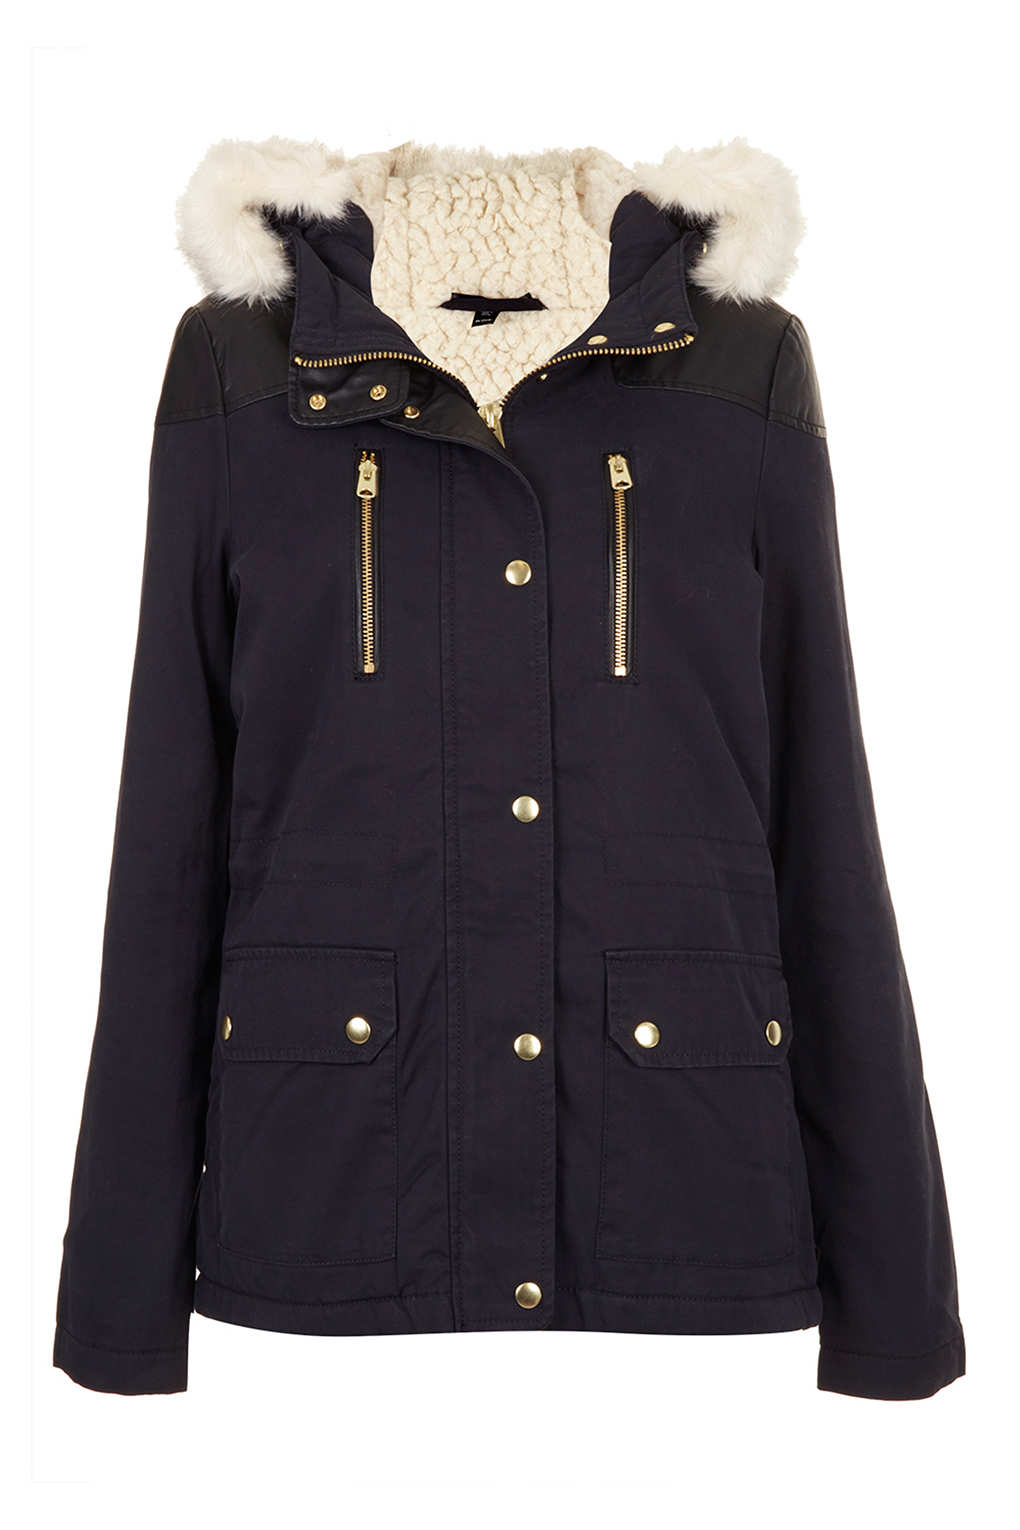 Topshop Petite Fur Trim Borg Lined Parka In Blue Navy